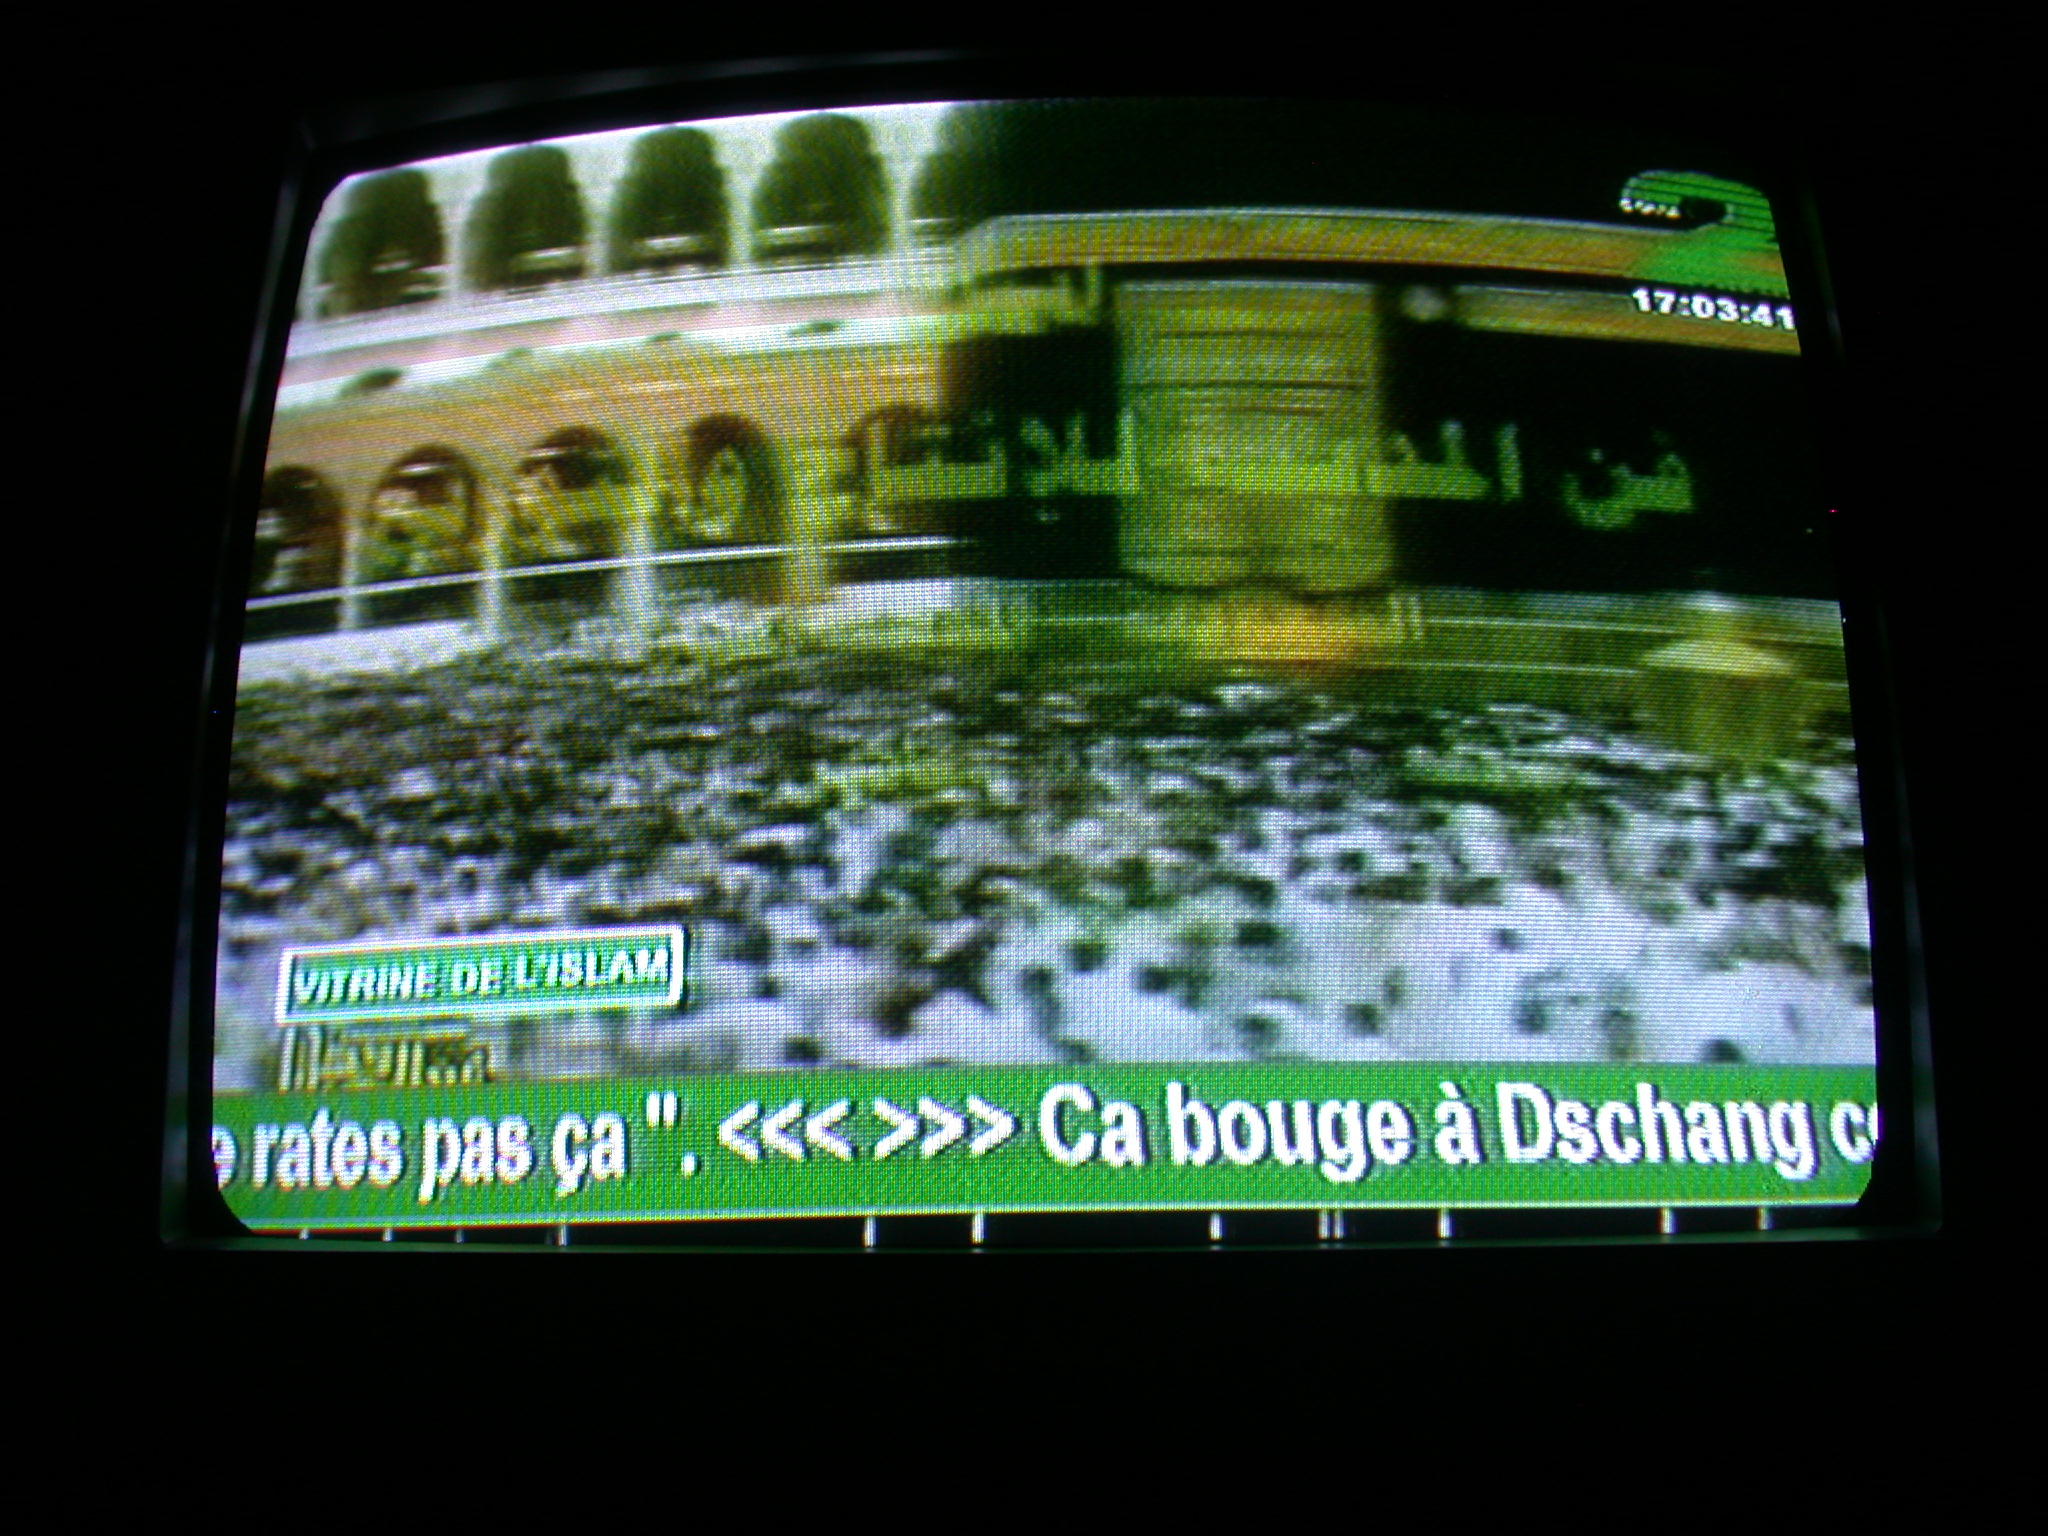 Hajj Pilgrims Circle Kaaba in Mecca on French-Advertised Television, Abomey, Benin